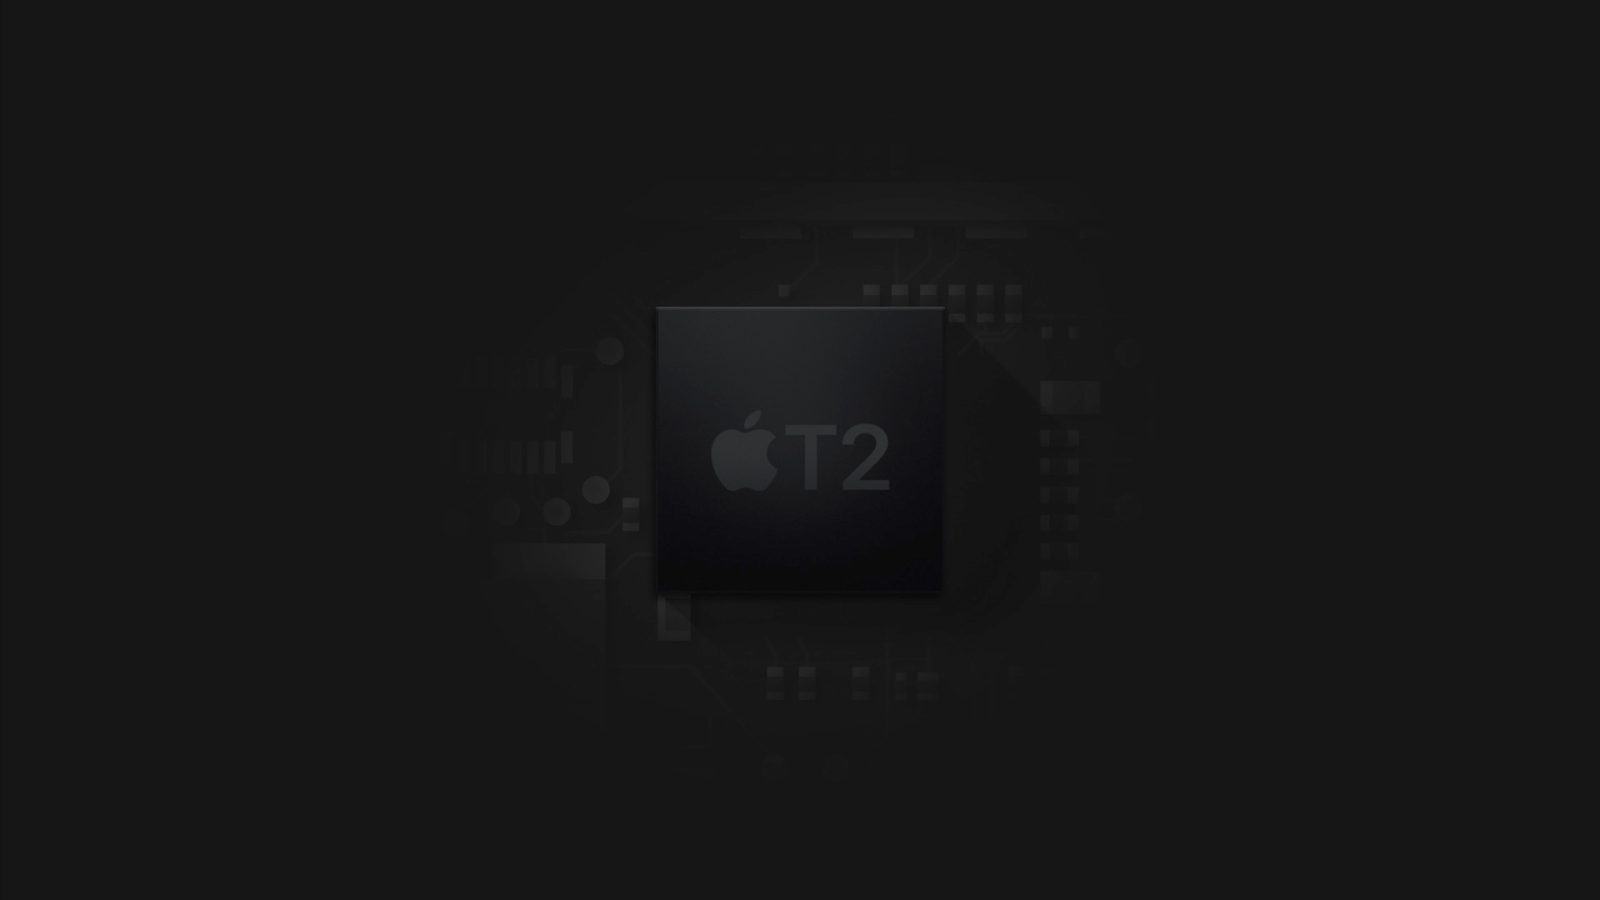 Apple Preventing Third-party iMac Pro & 2018 MacBook Pro Repairs, Internal Document Says